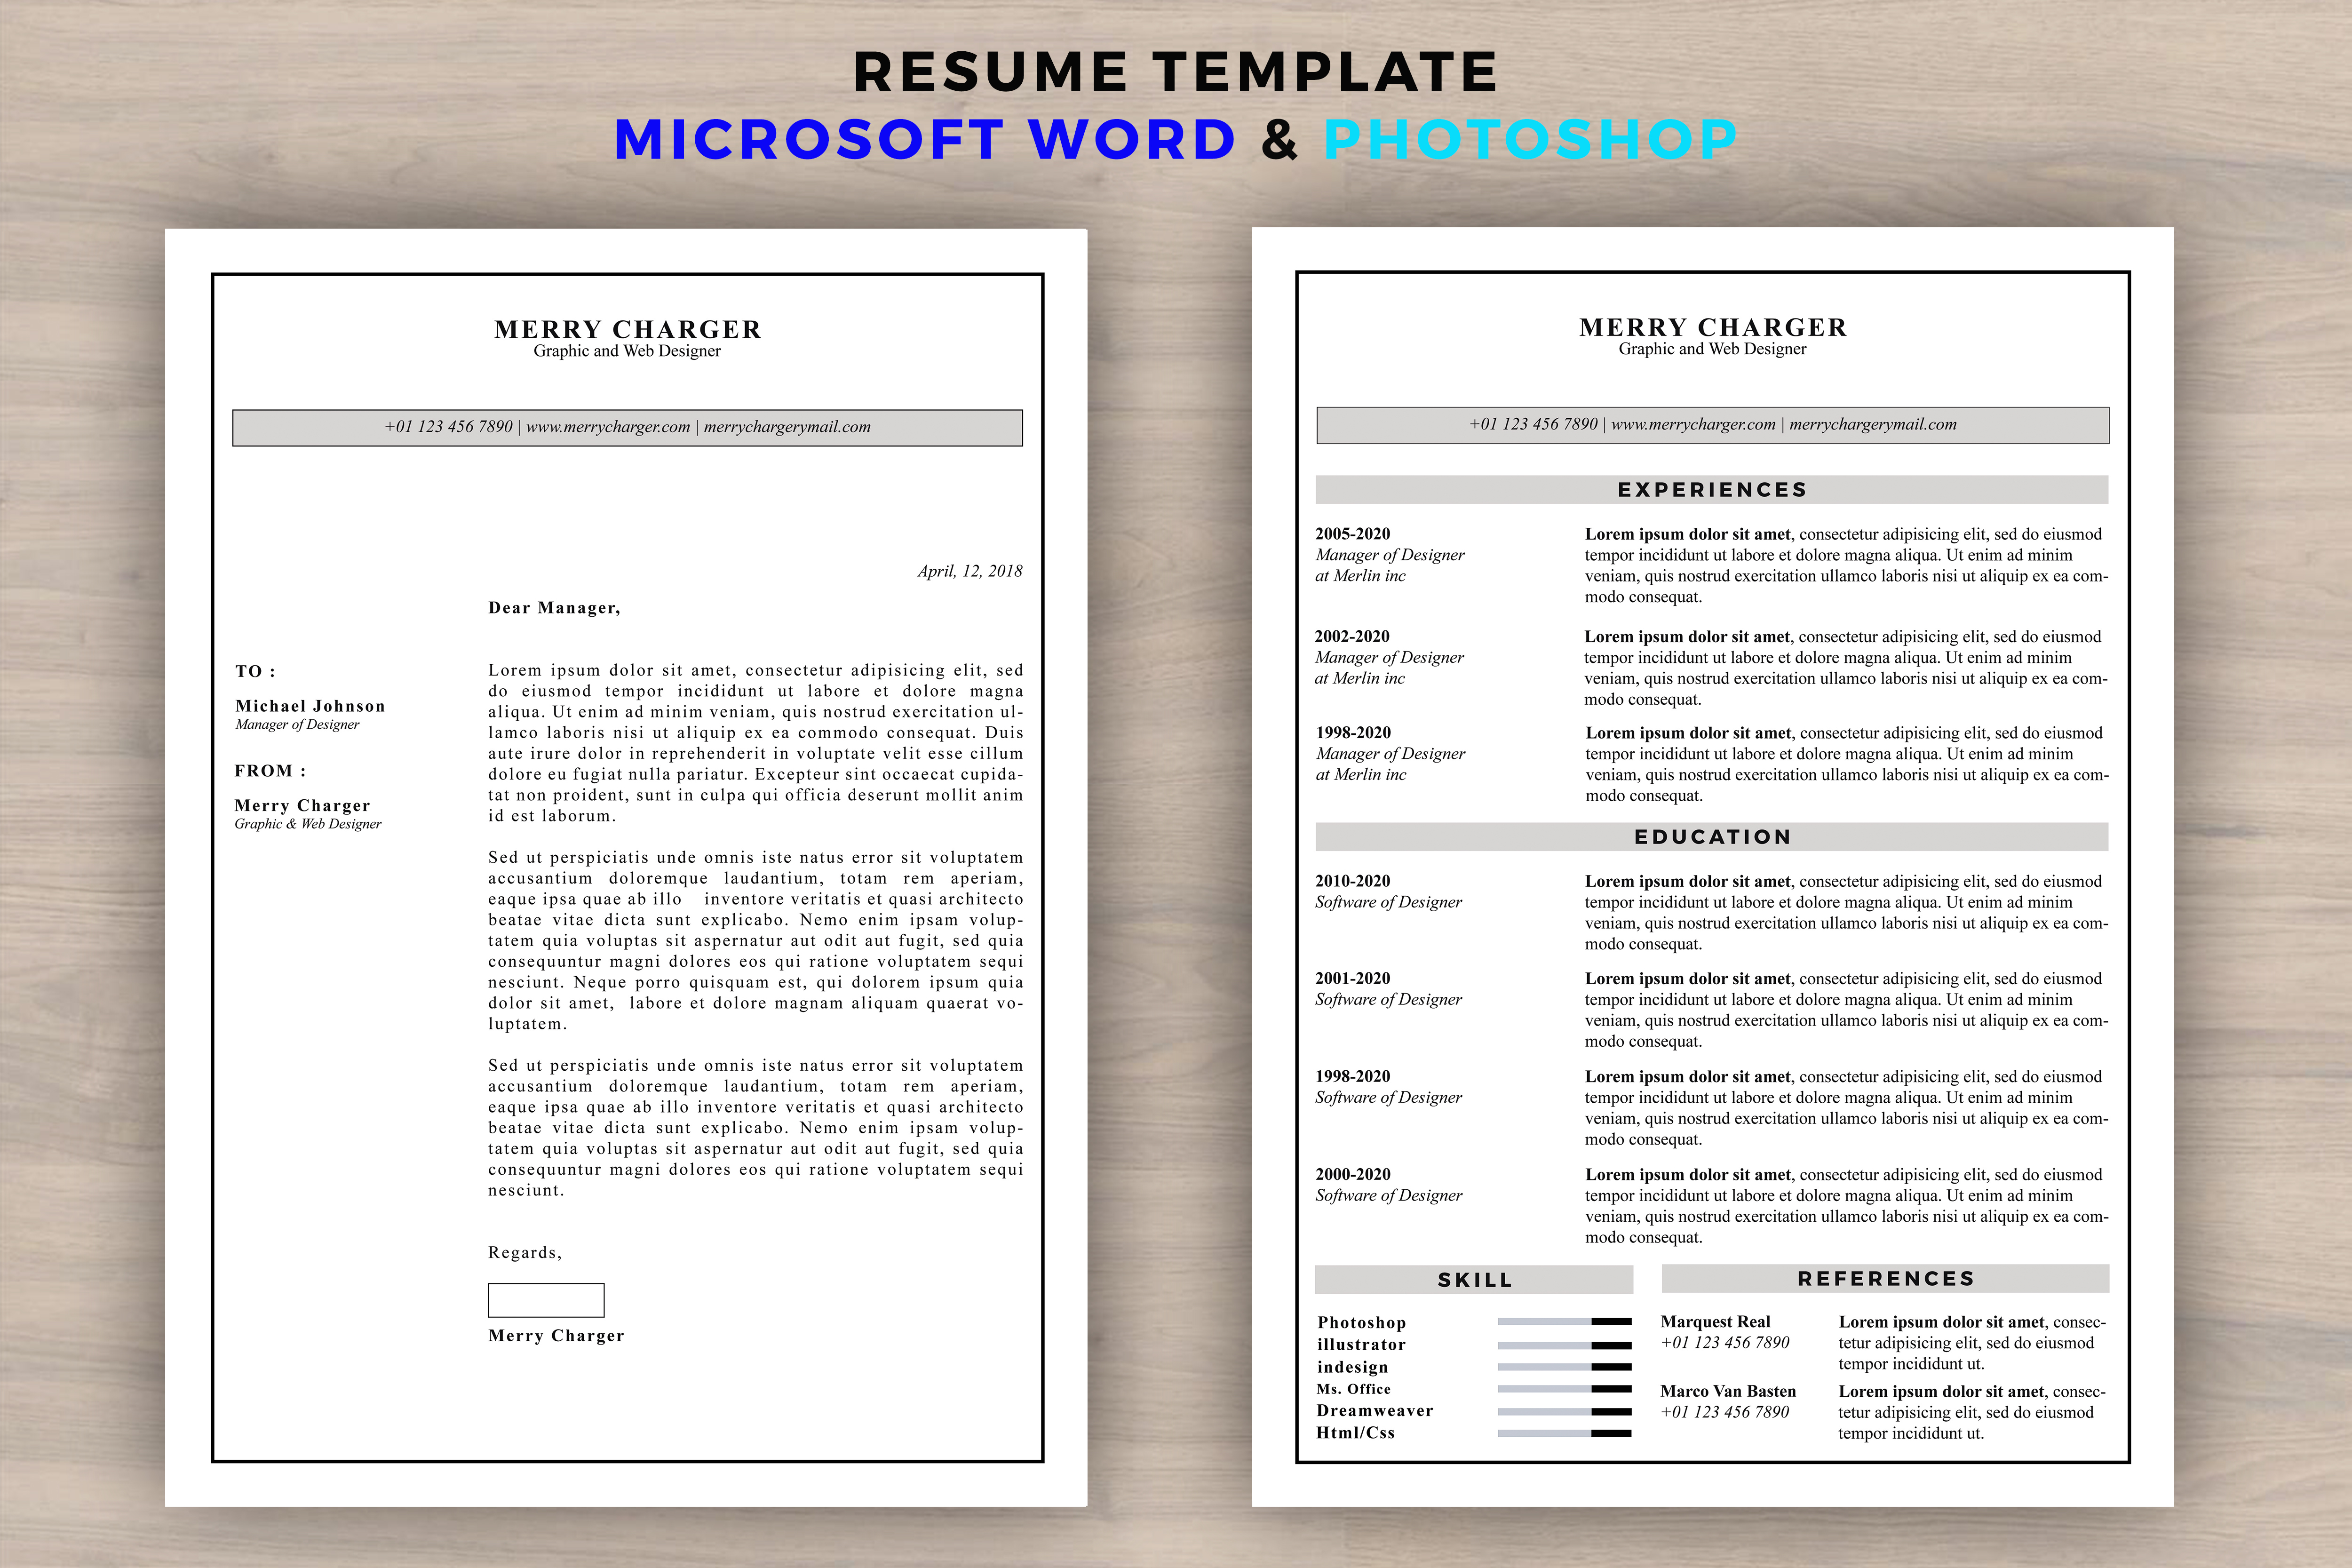 9c9e8daa4111b494b8772ad0cdf545b5_resize Technical Resume Format In Word Links on download simple, templates for, for accountant, download bangladesh, for experienced india, account officer,